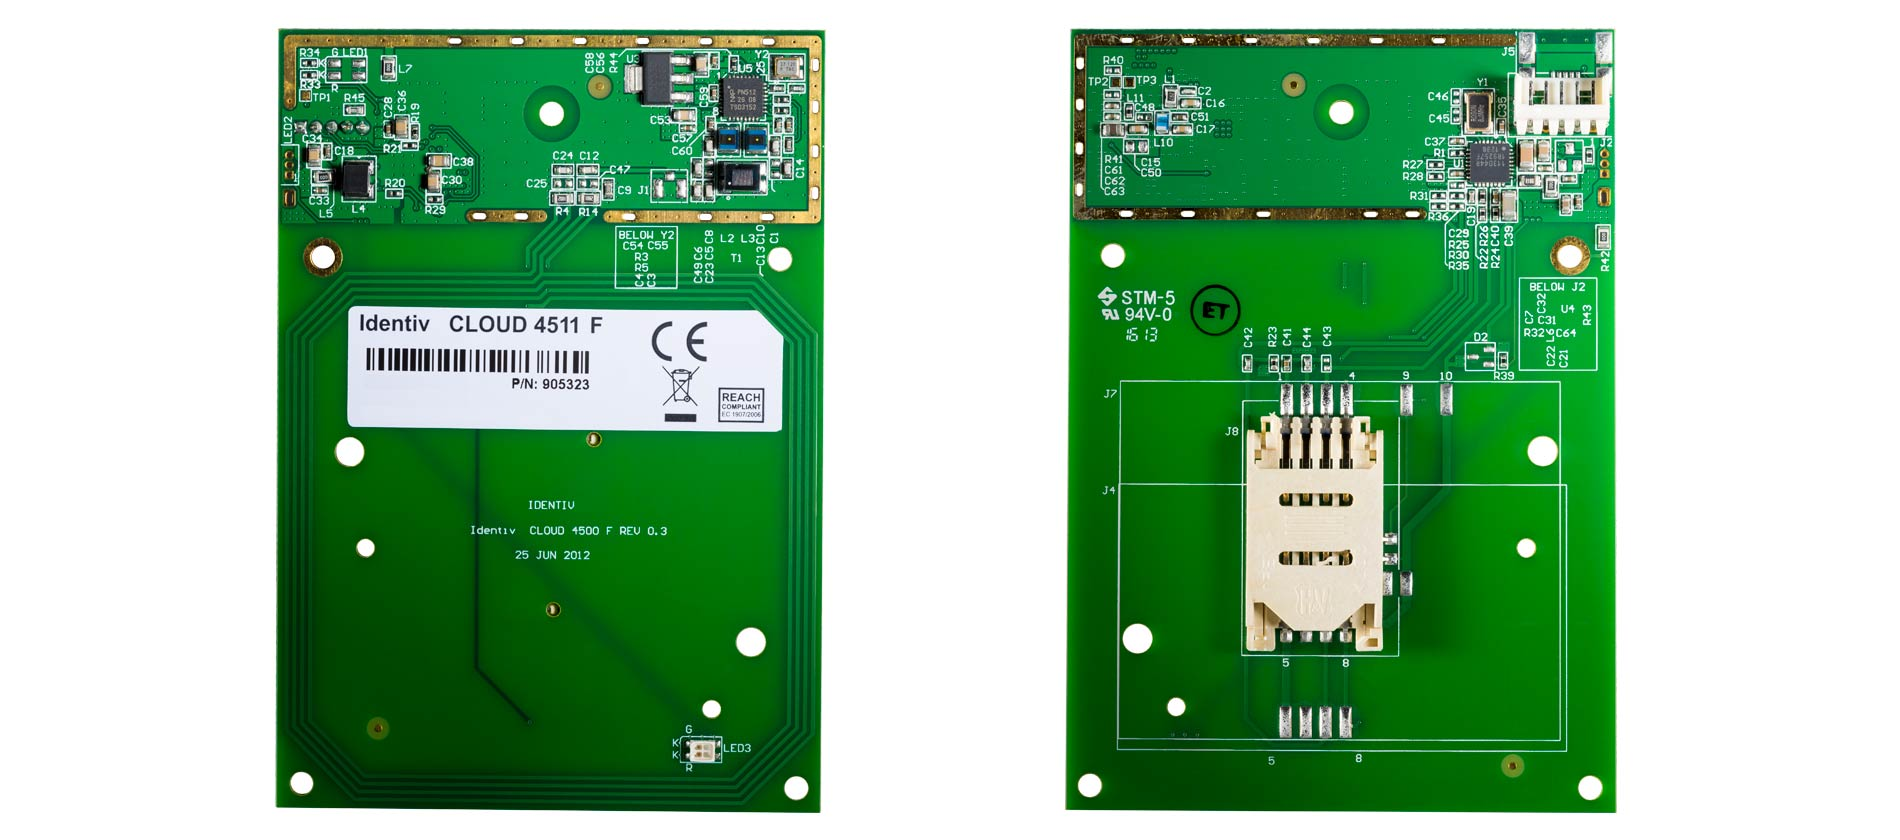 Identiv uTrust 4511 F Contactless Smart Card Reader Board